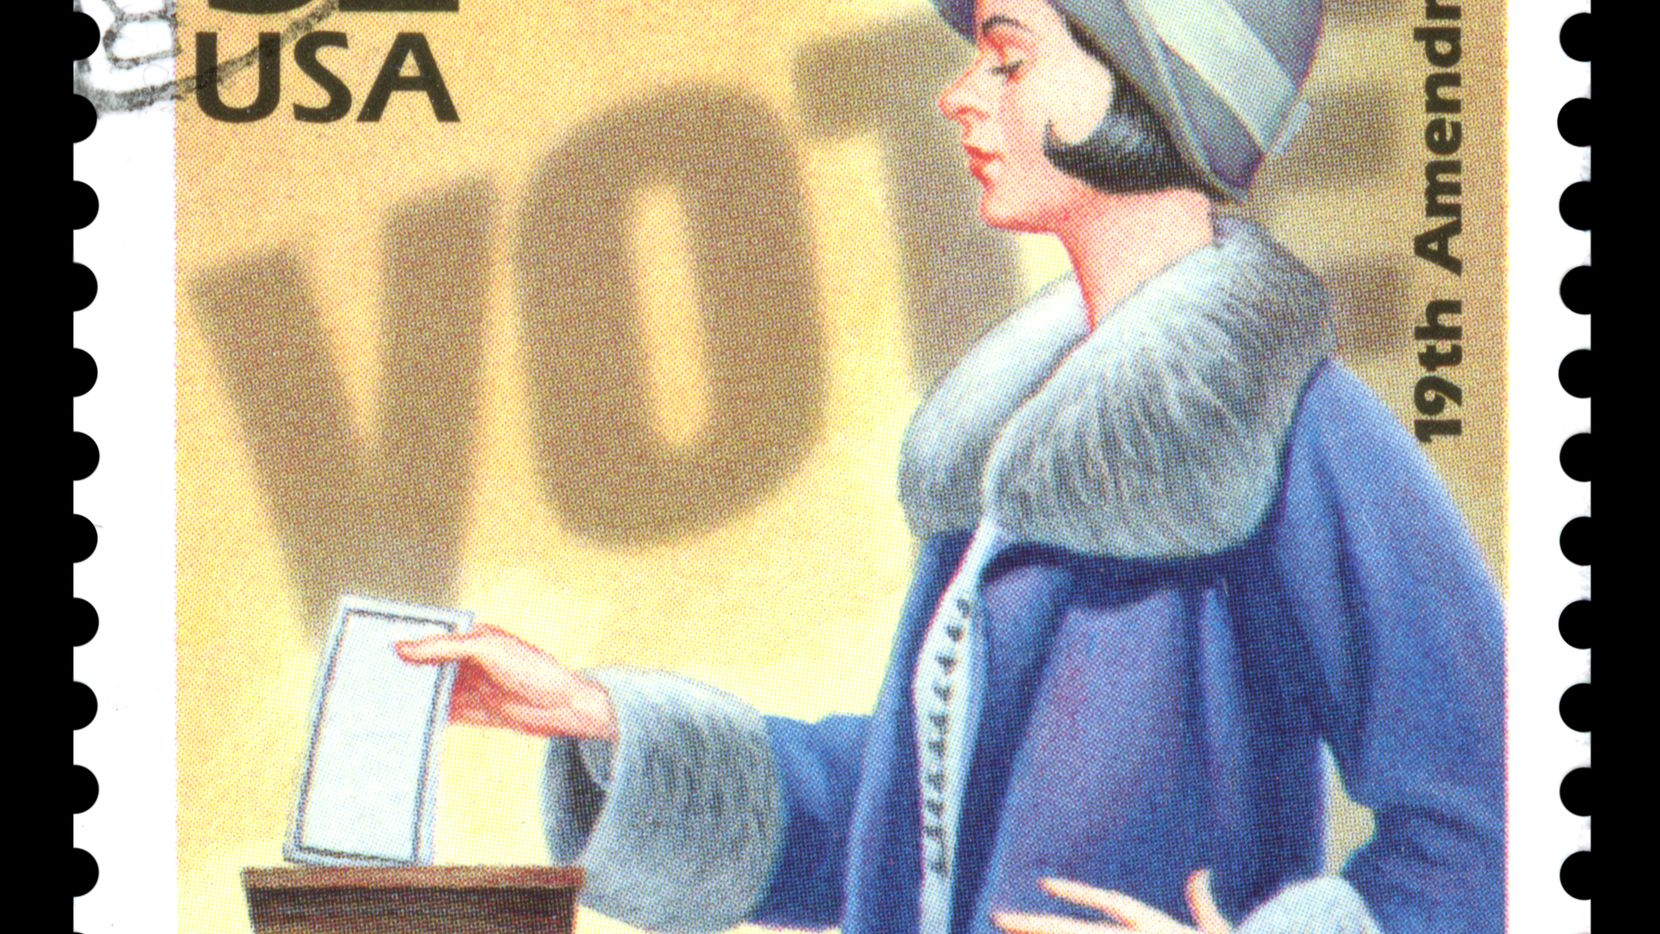 USA vintage postage stamp showing an image of a woman voting in the 1920s commemorating women's suffrage